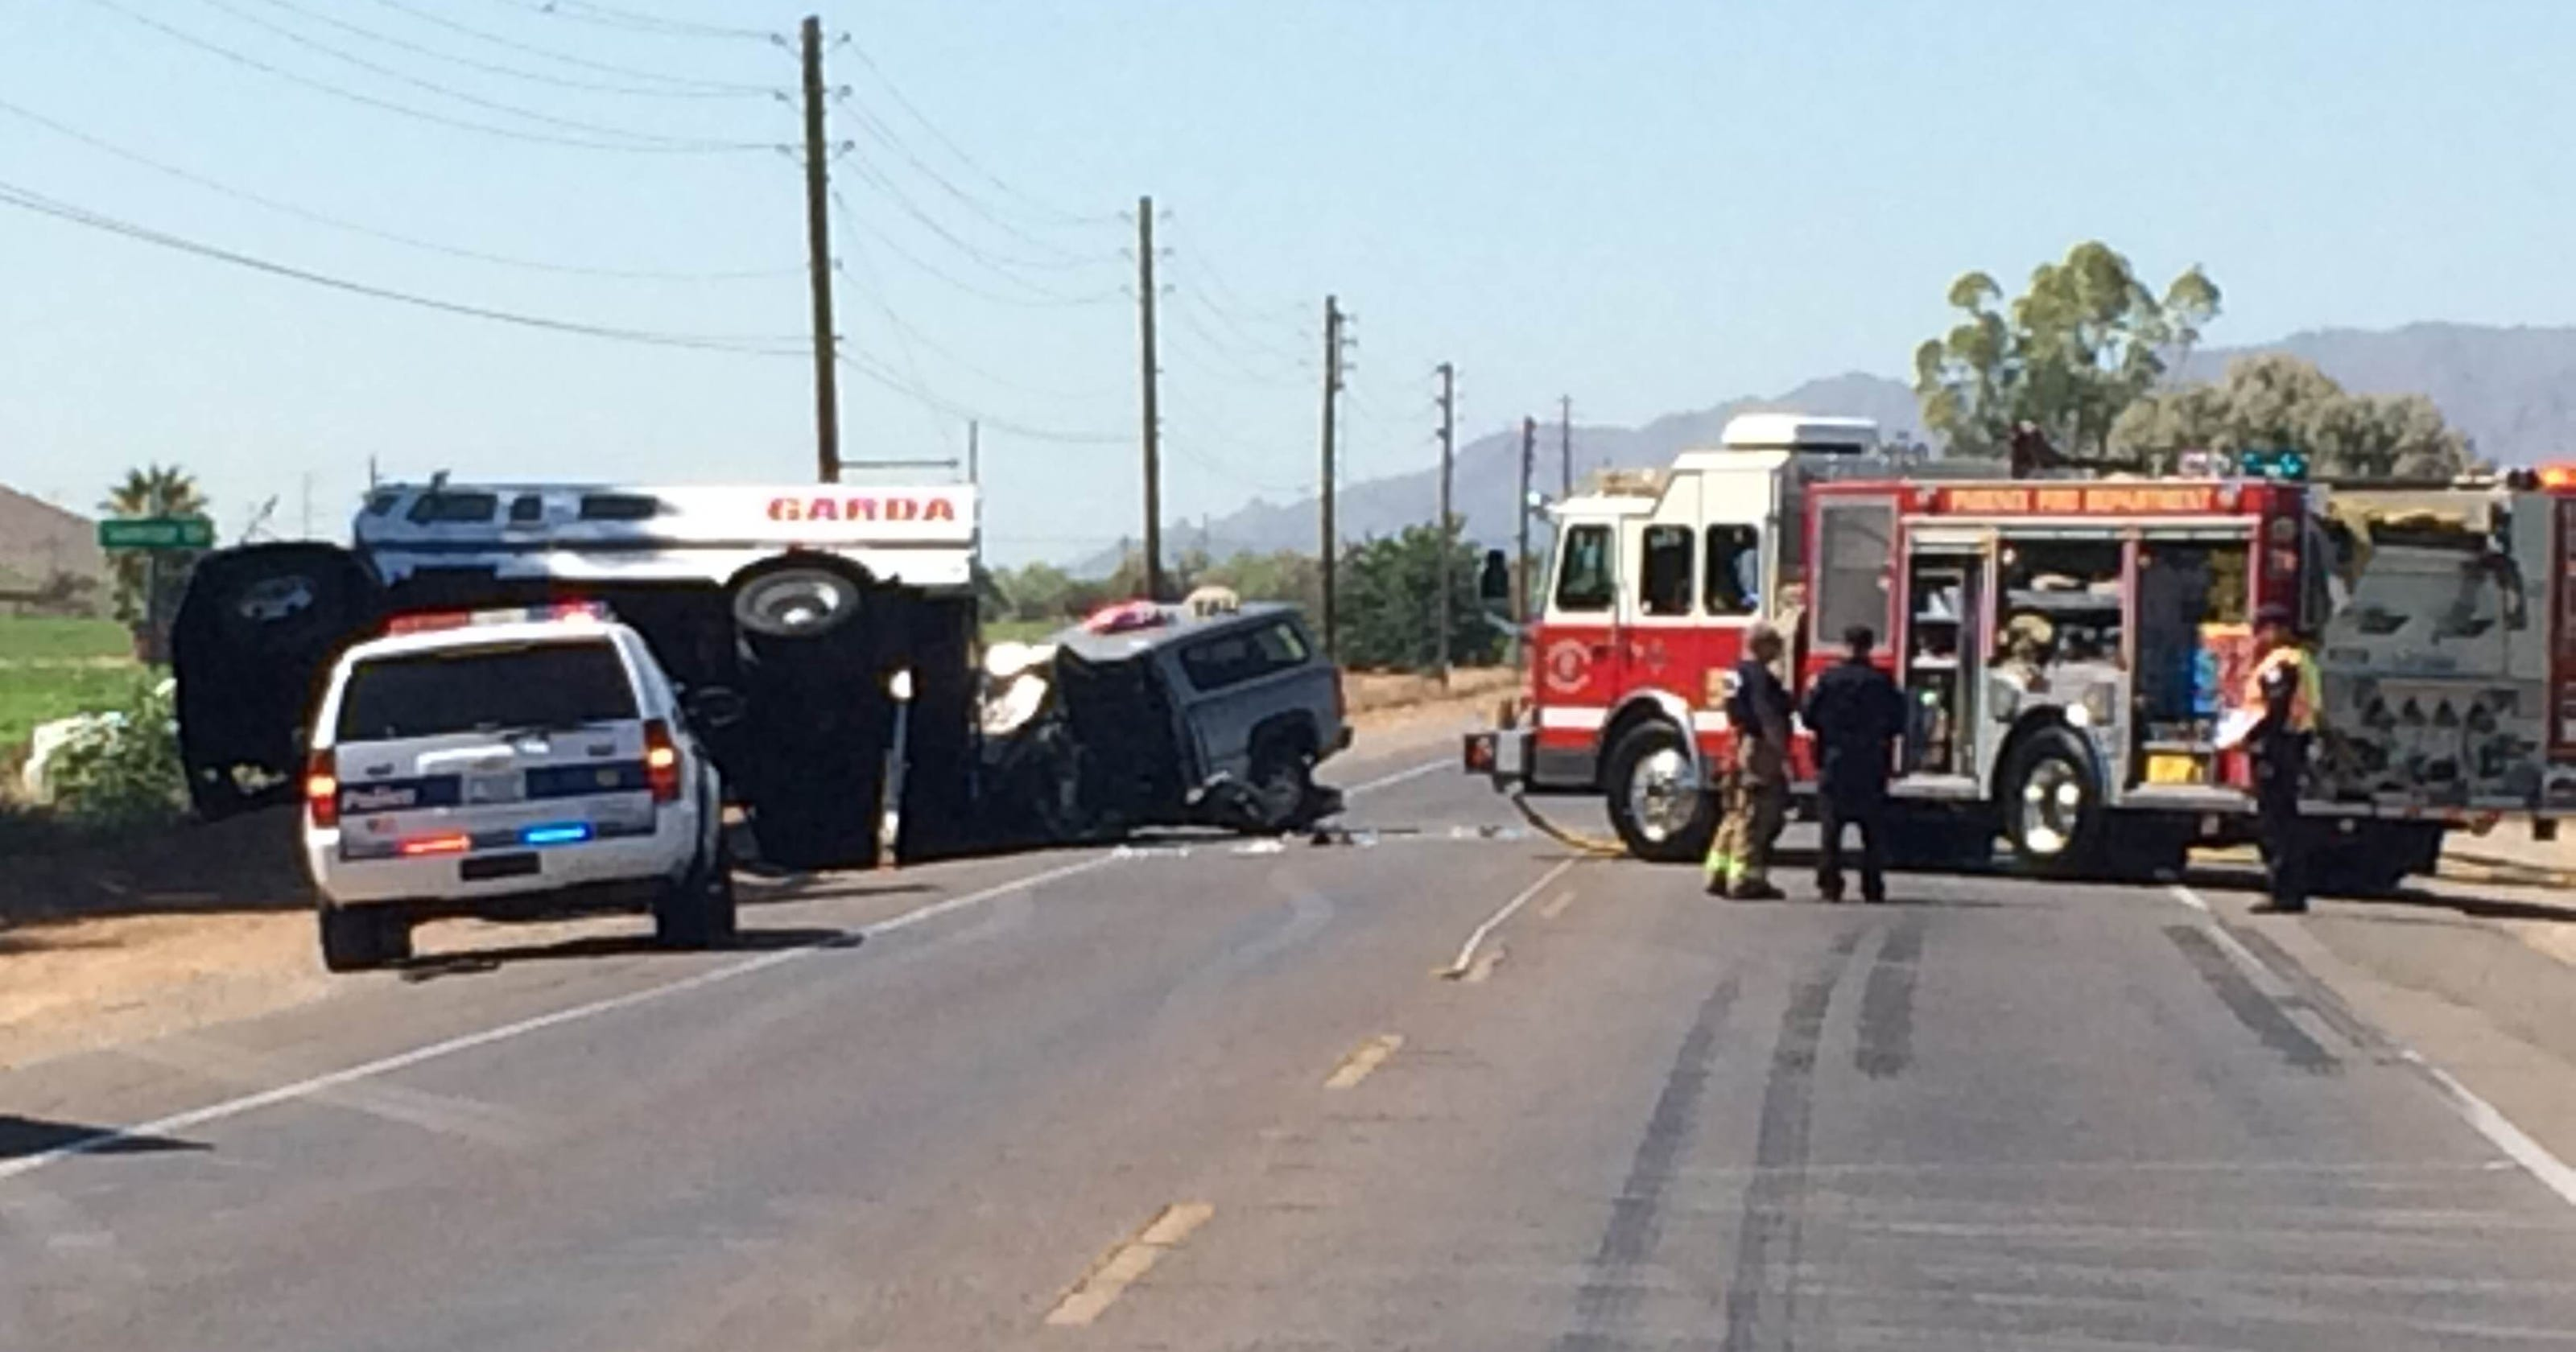 Phoenix Police Armored Truck Driver Cellphone Before Crash